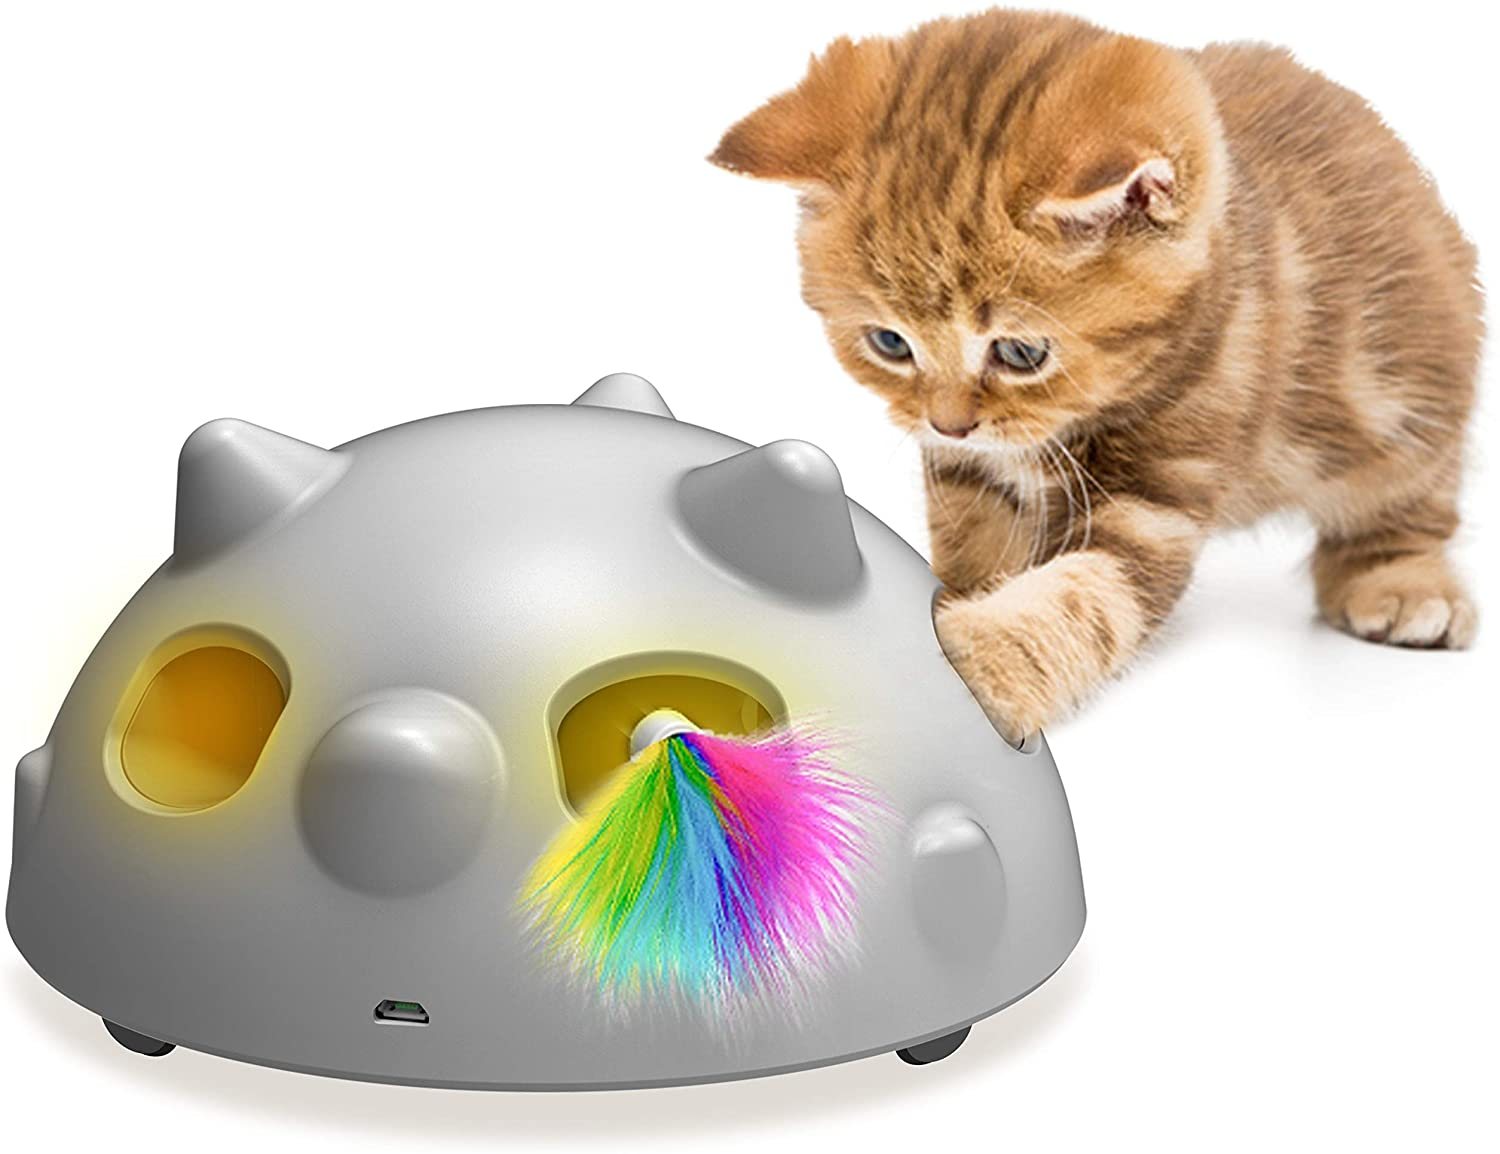 Small kitty is playing with DOMGOOPET electronic toy